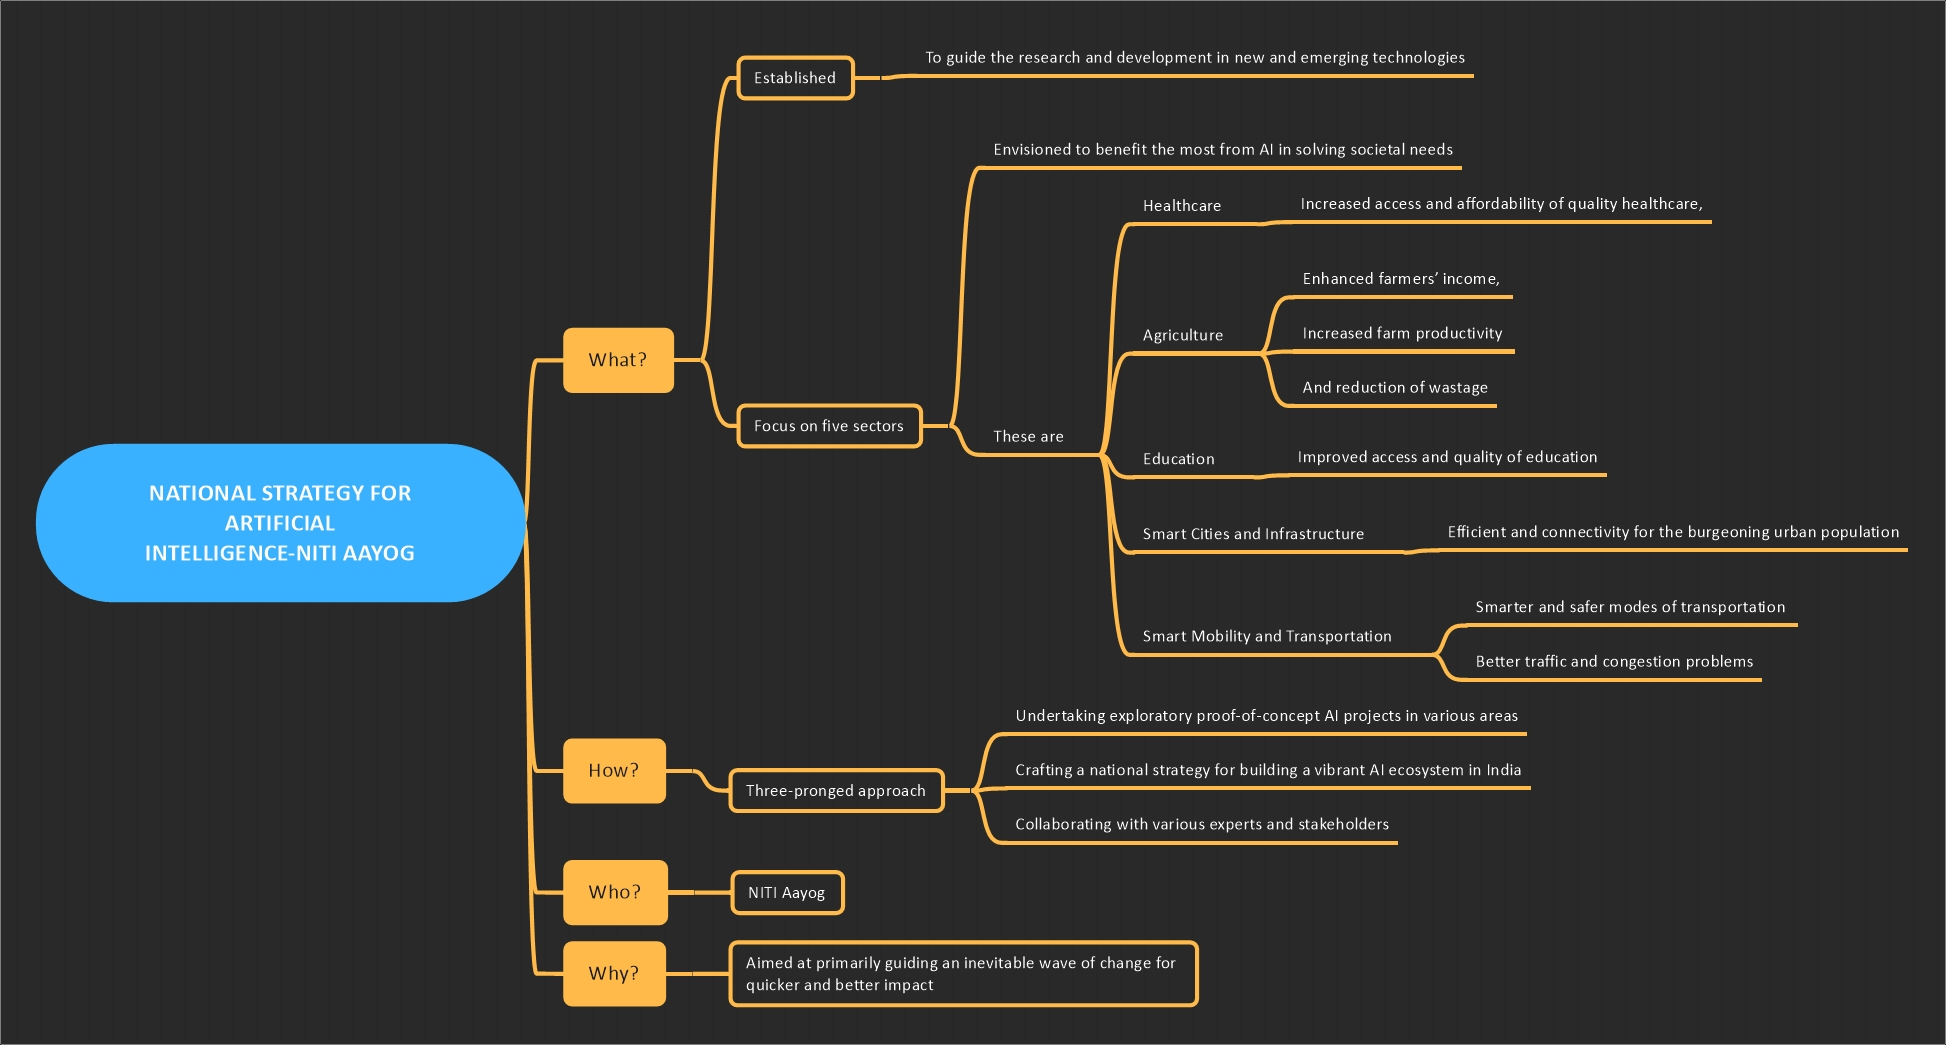 national strategy for artificial intelligence mindmap notes